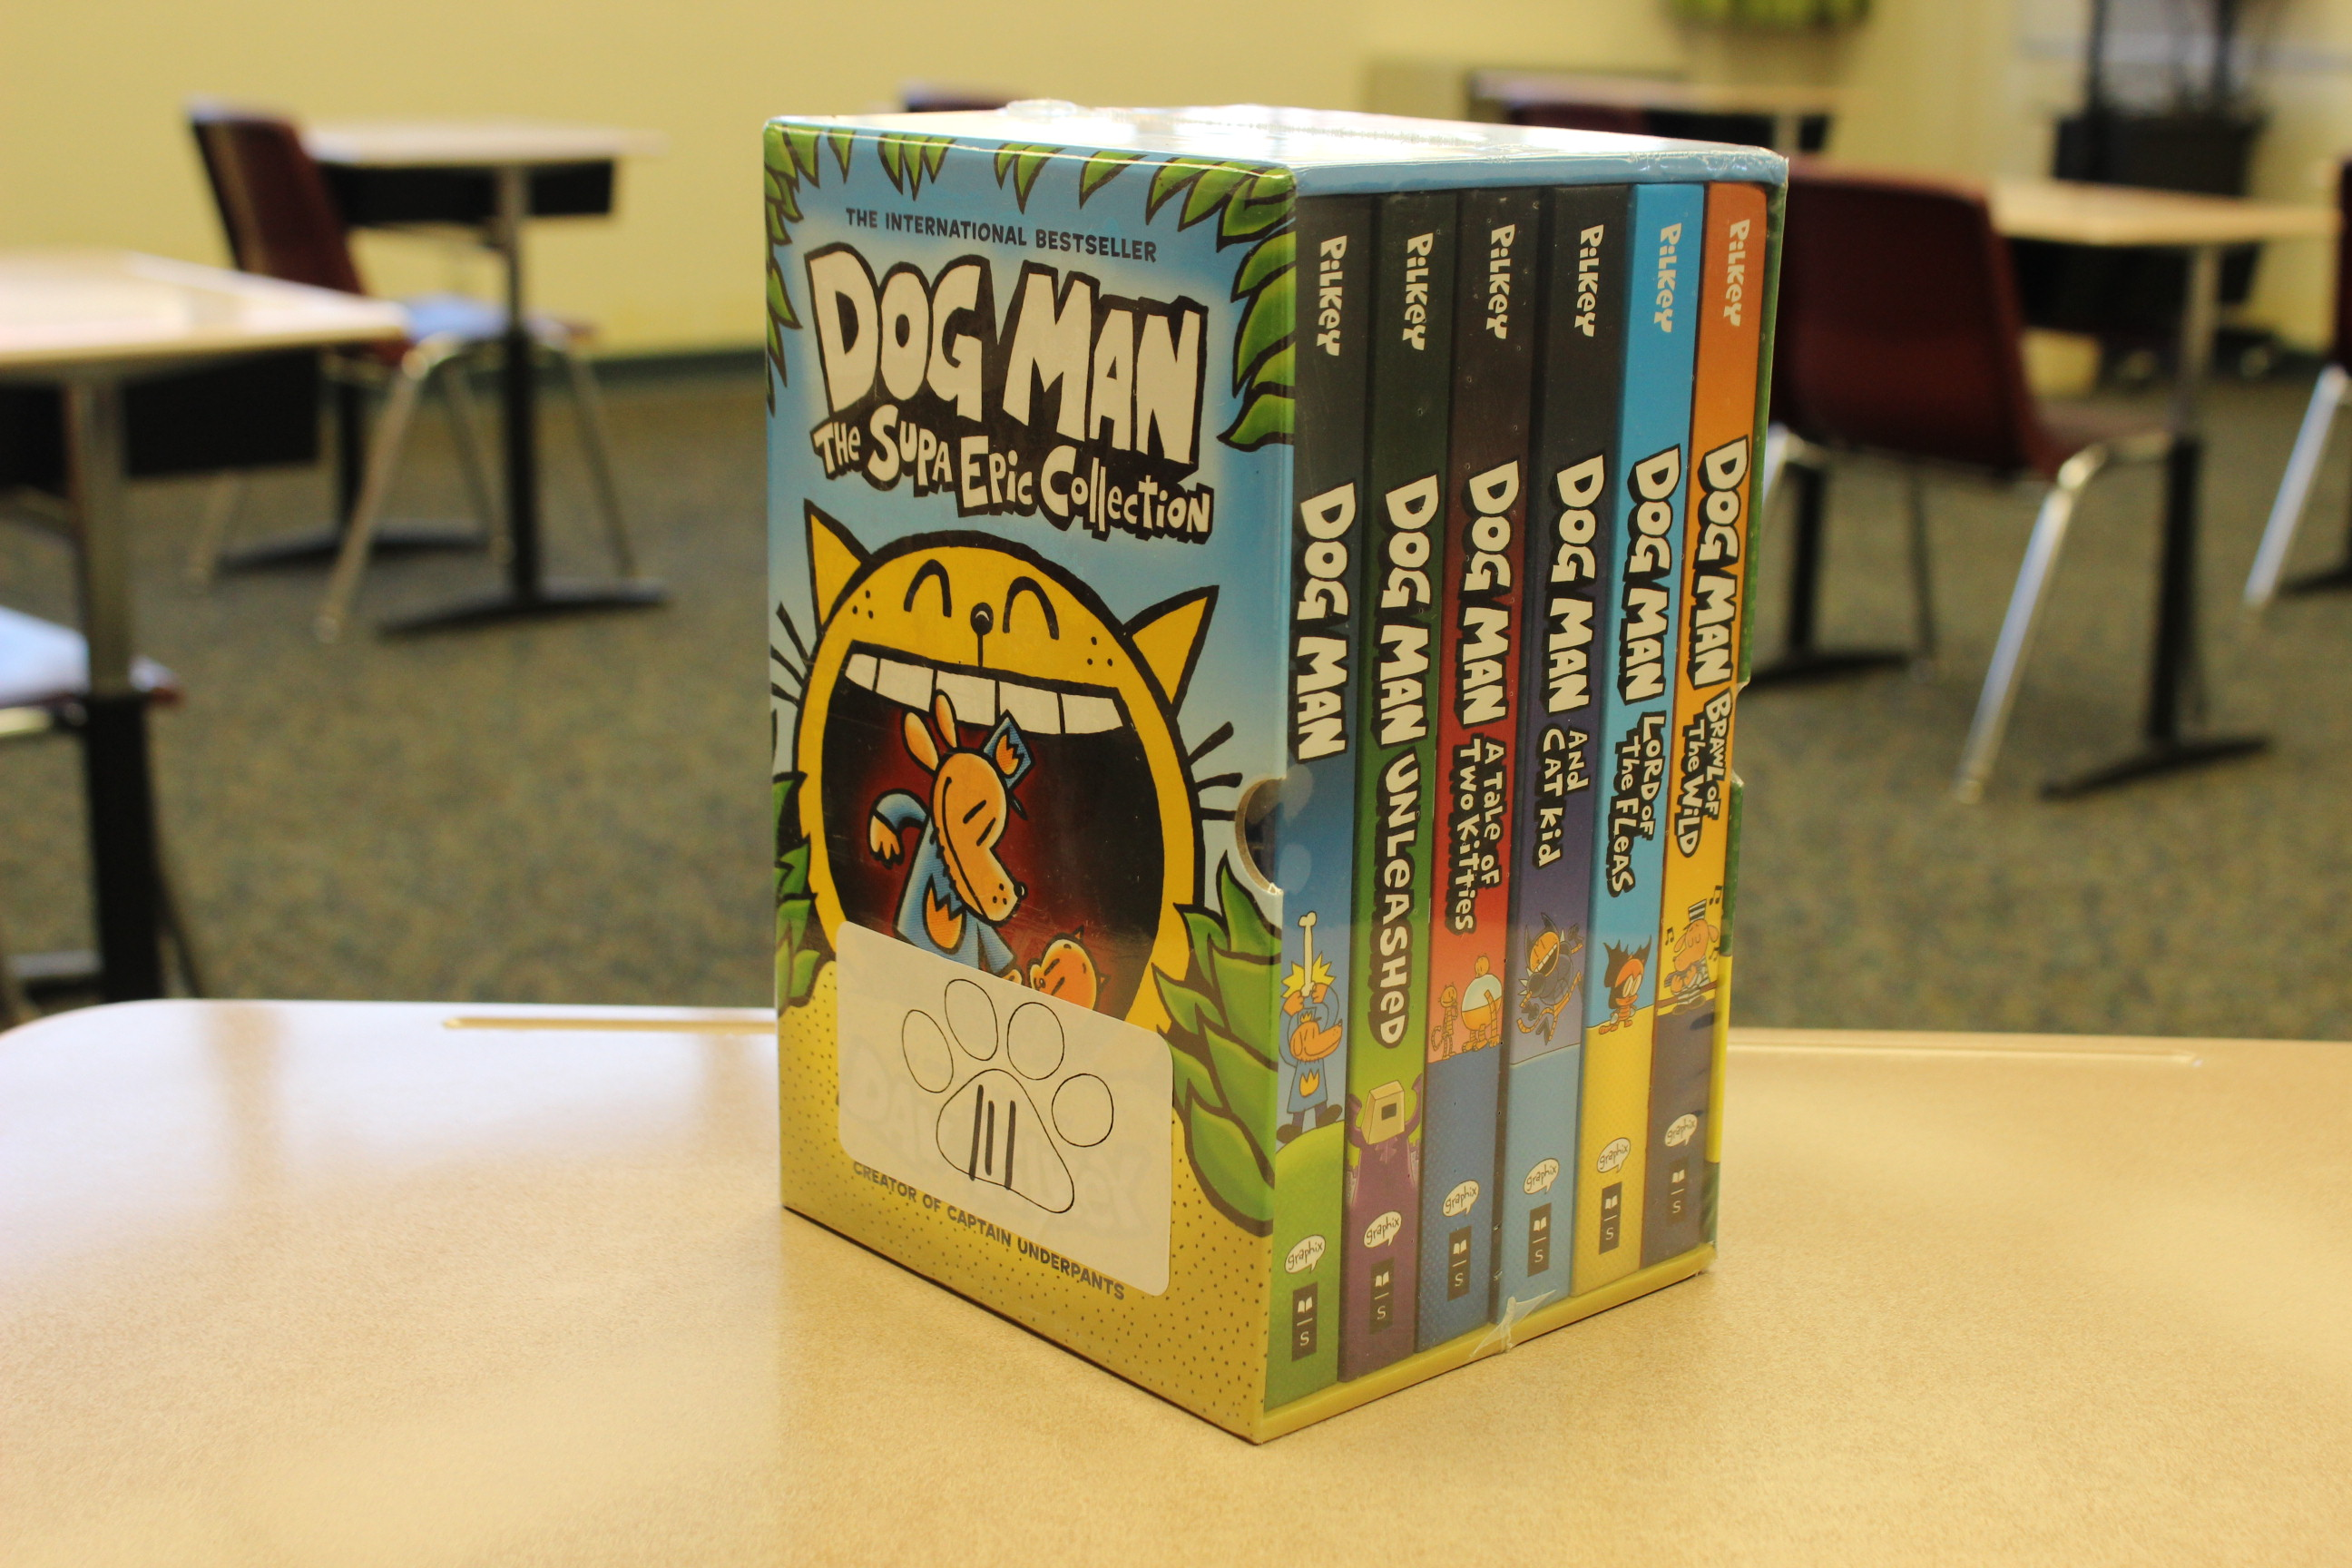 111 Paws Dogman Book Set